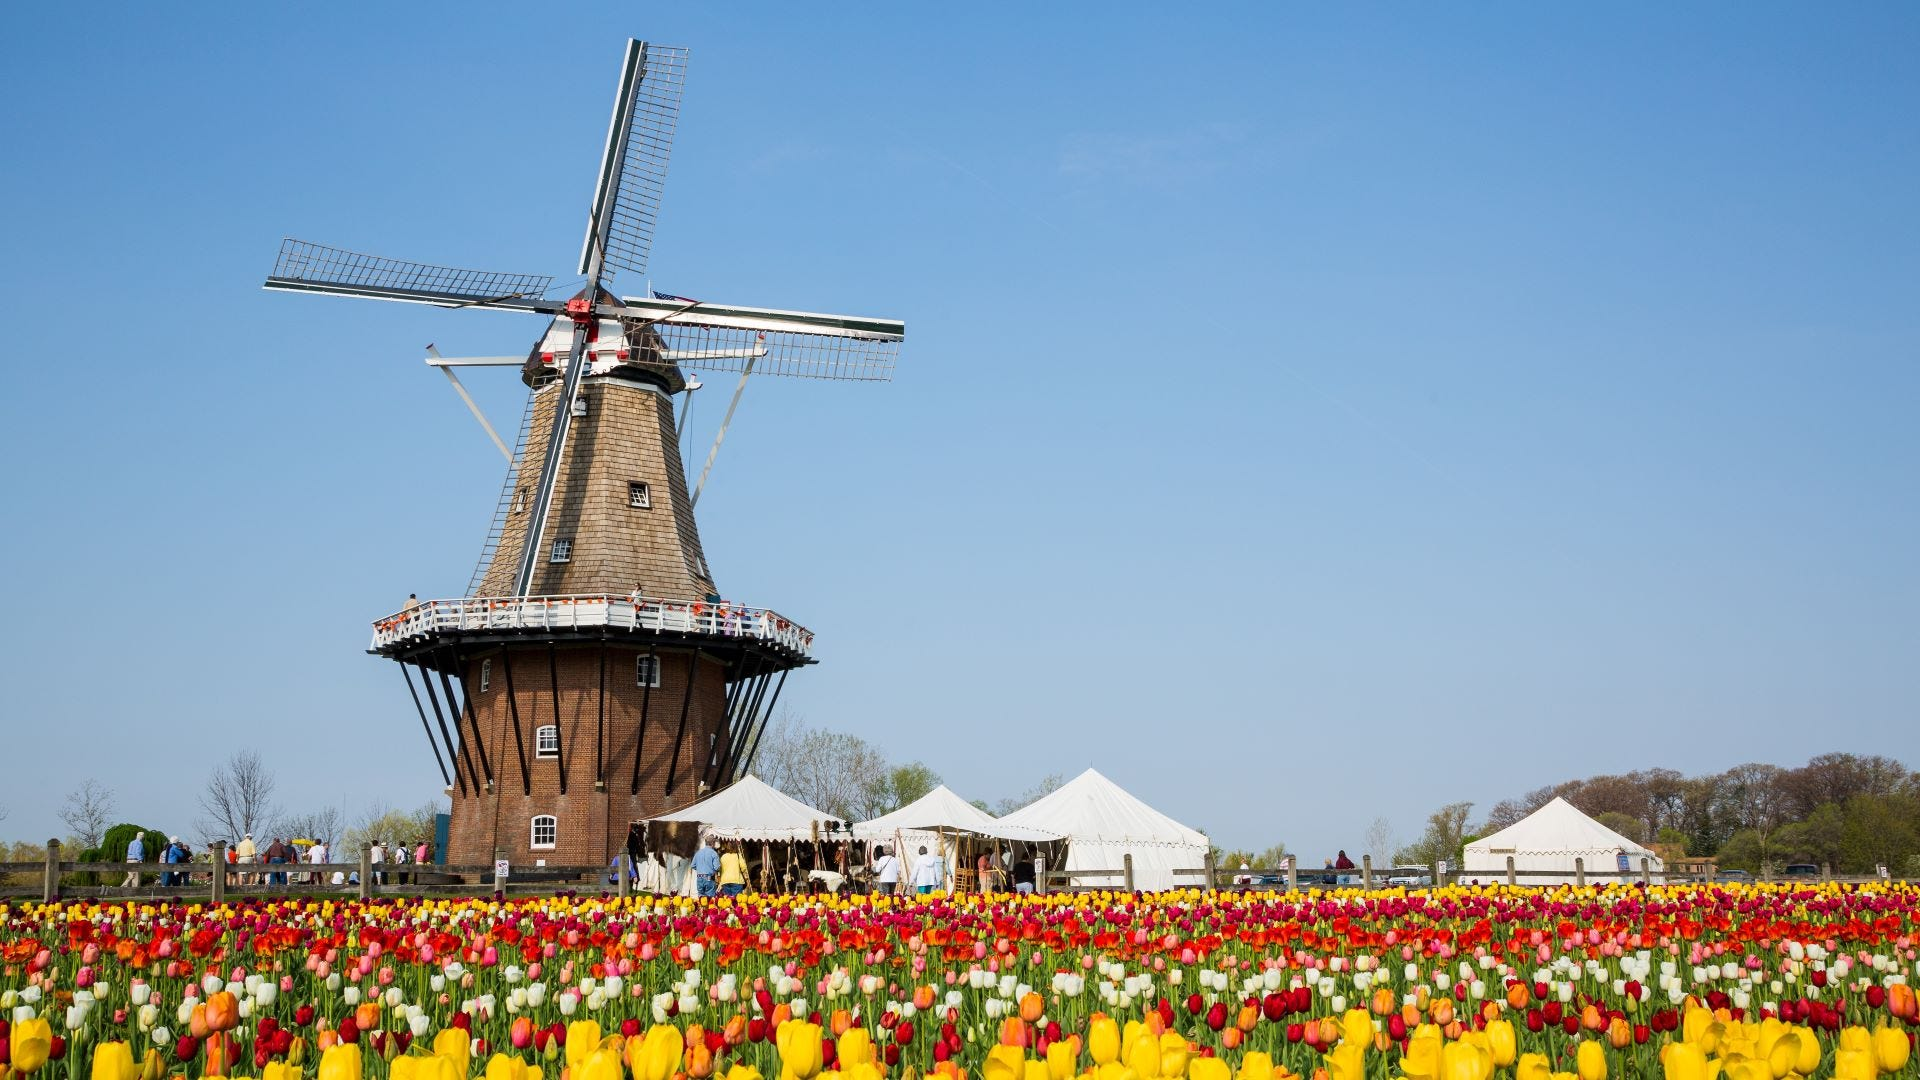 A windmill in a field of tulips in Holland, Michigan.